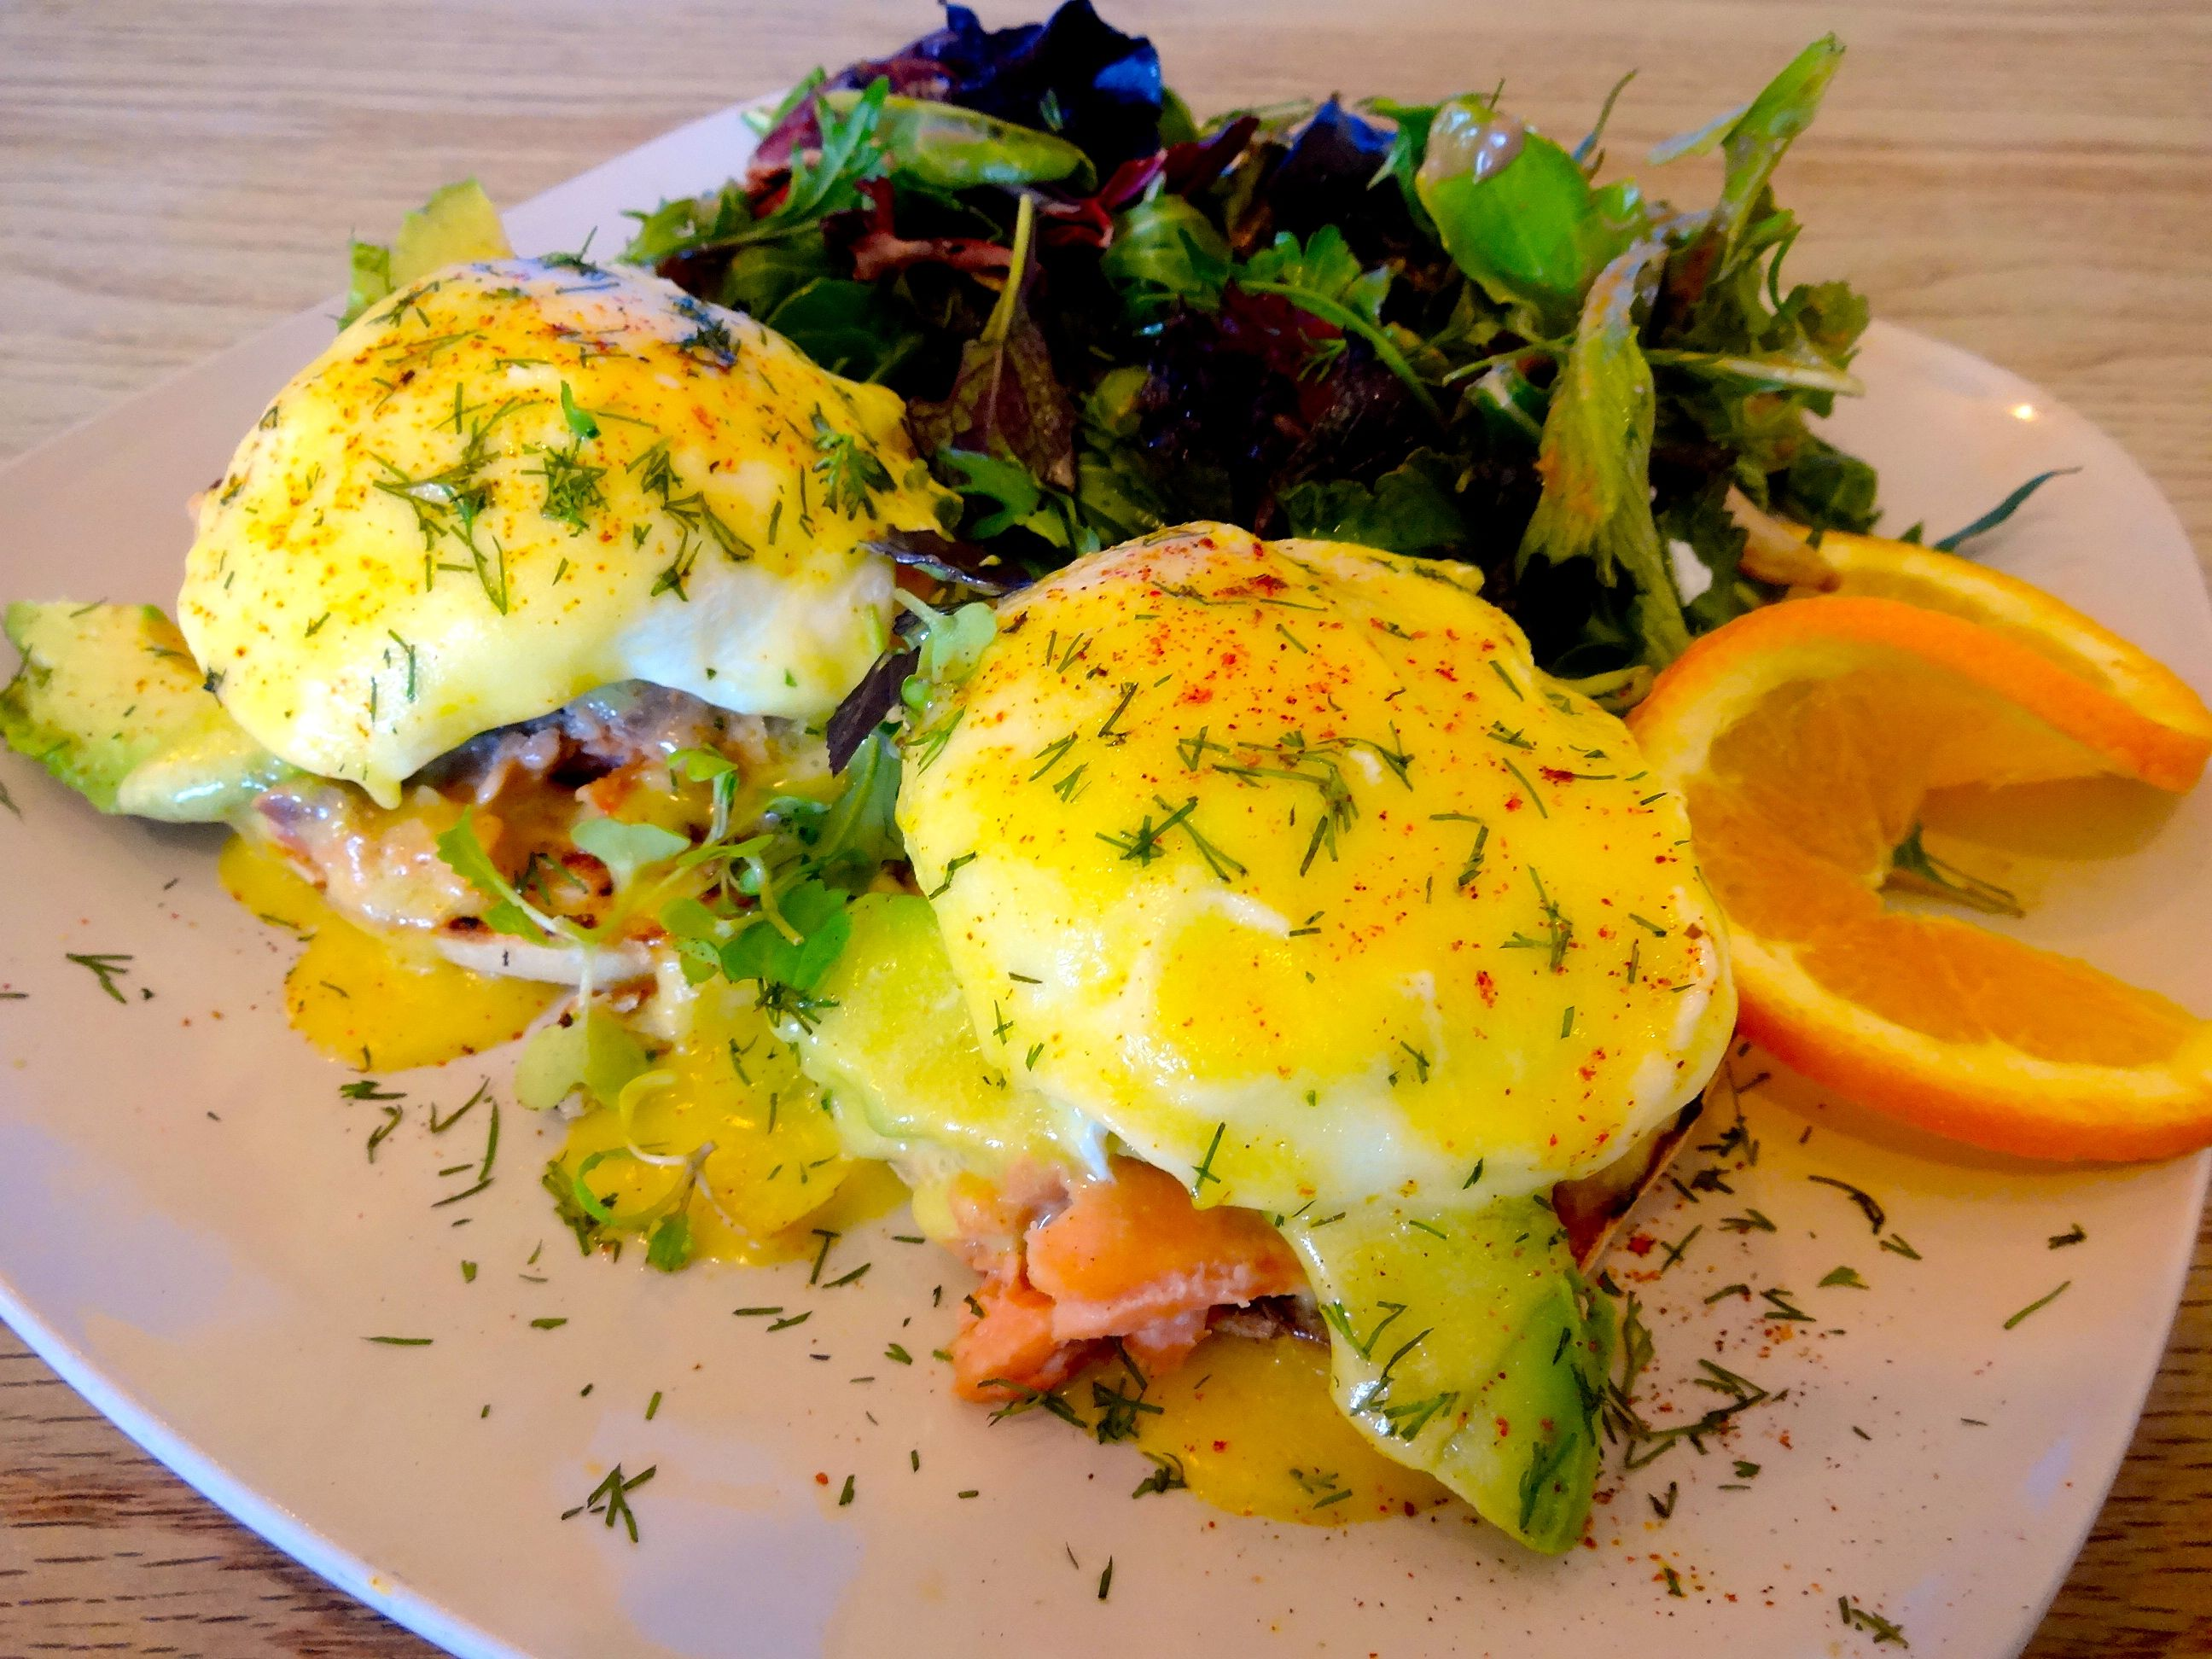 Wordless Wednesday: Smoked Wild Steelhead Trout Eggs Benedict by Chef Luke Patterson of Luke's Joint